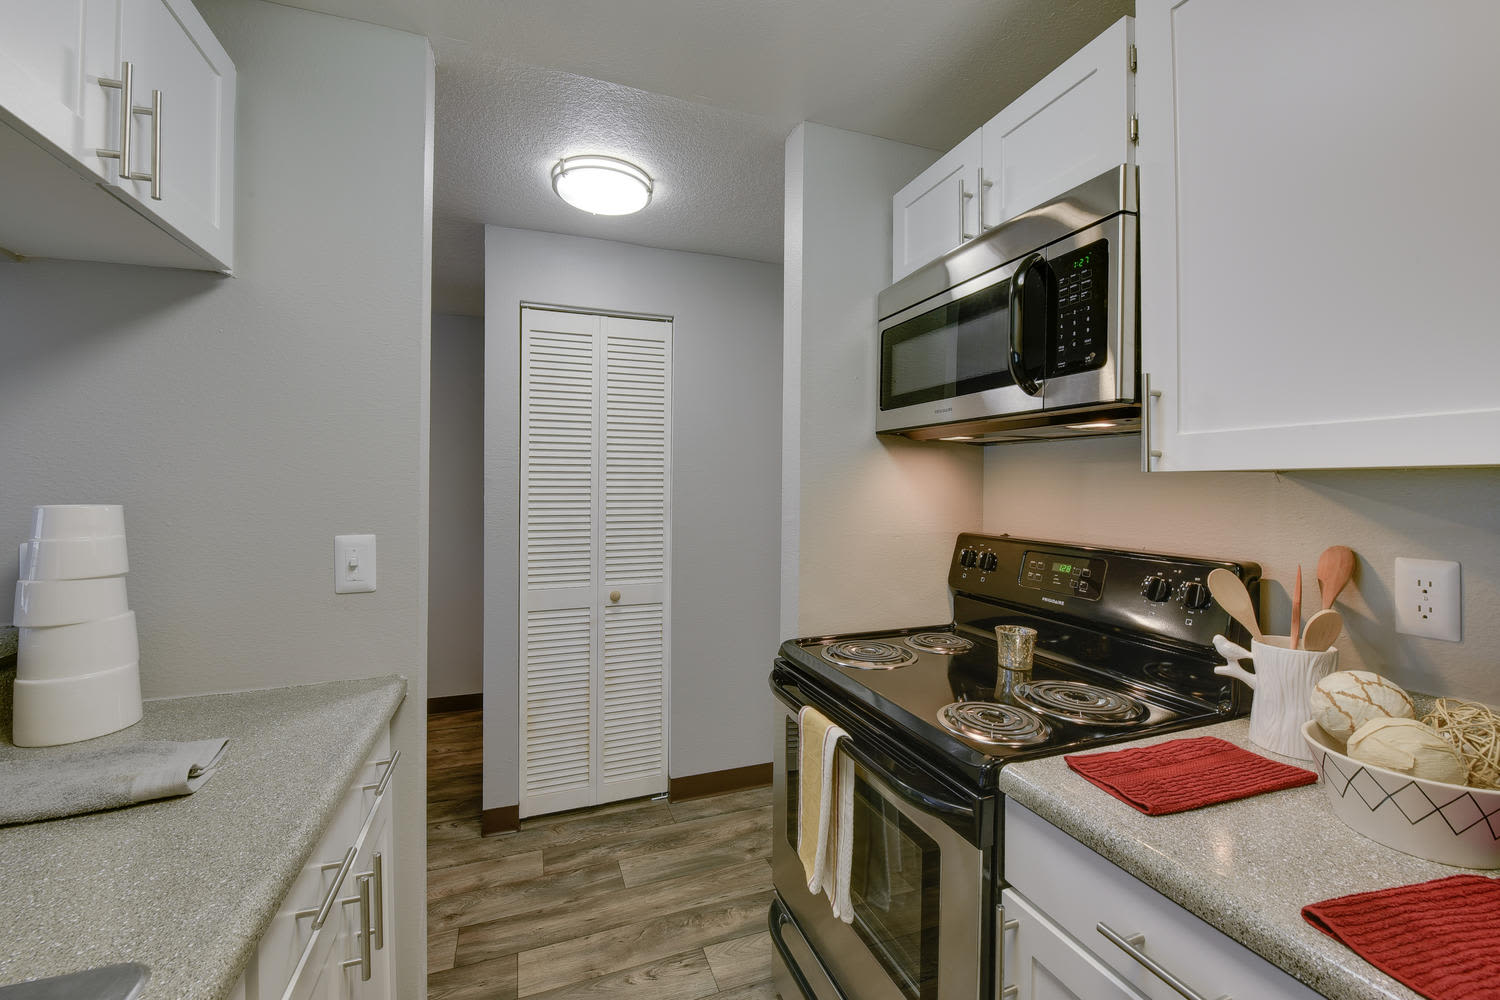 Upgraded 1 2 bedroom apartments in beaverton or for 1 bedroom apartments beaverton